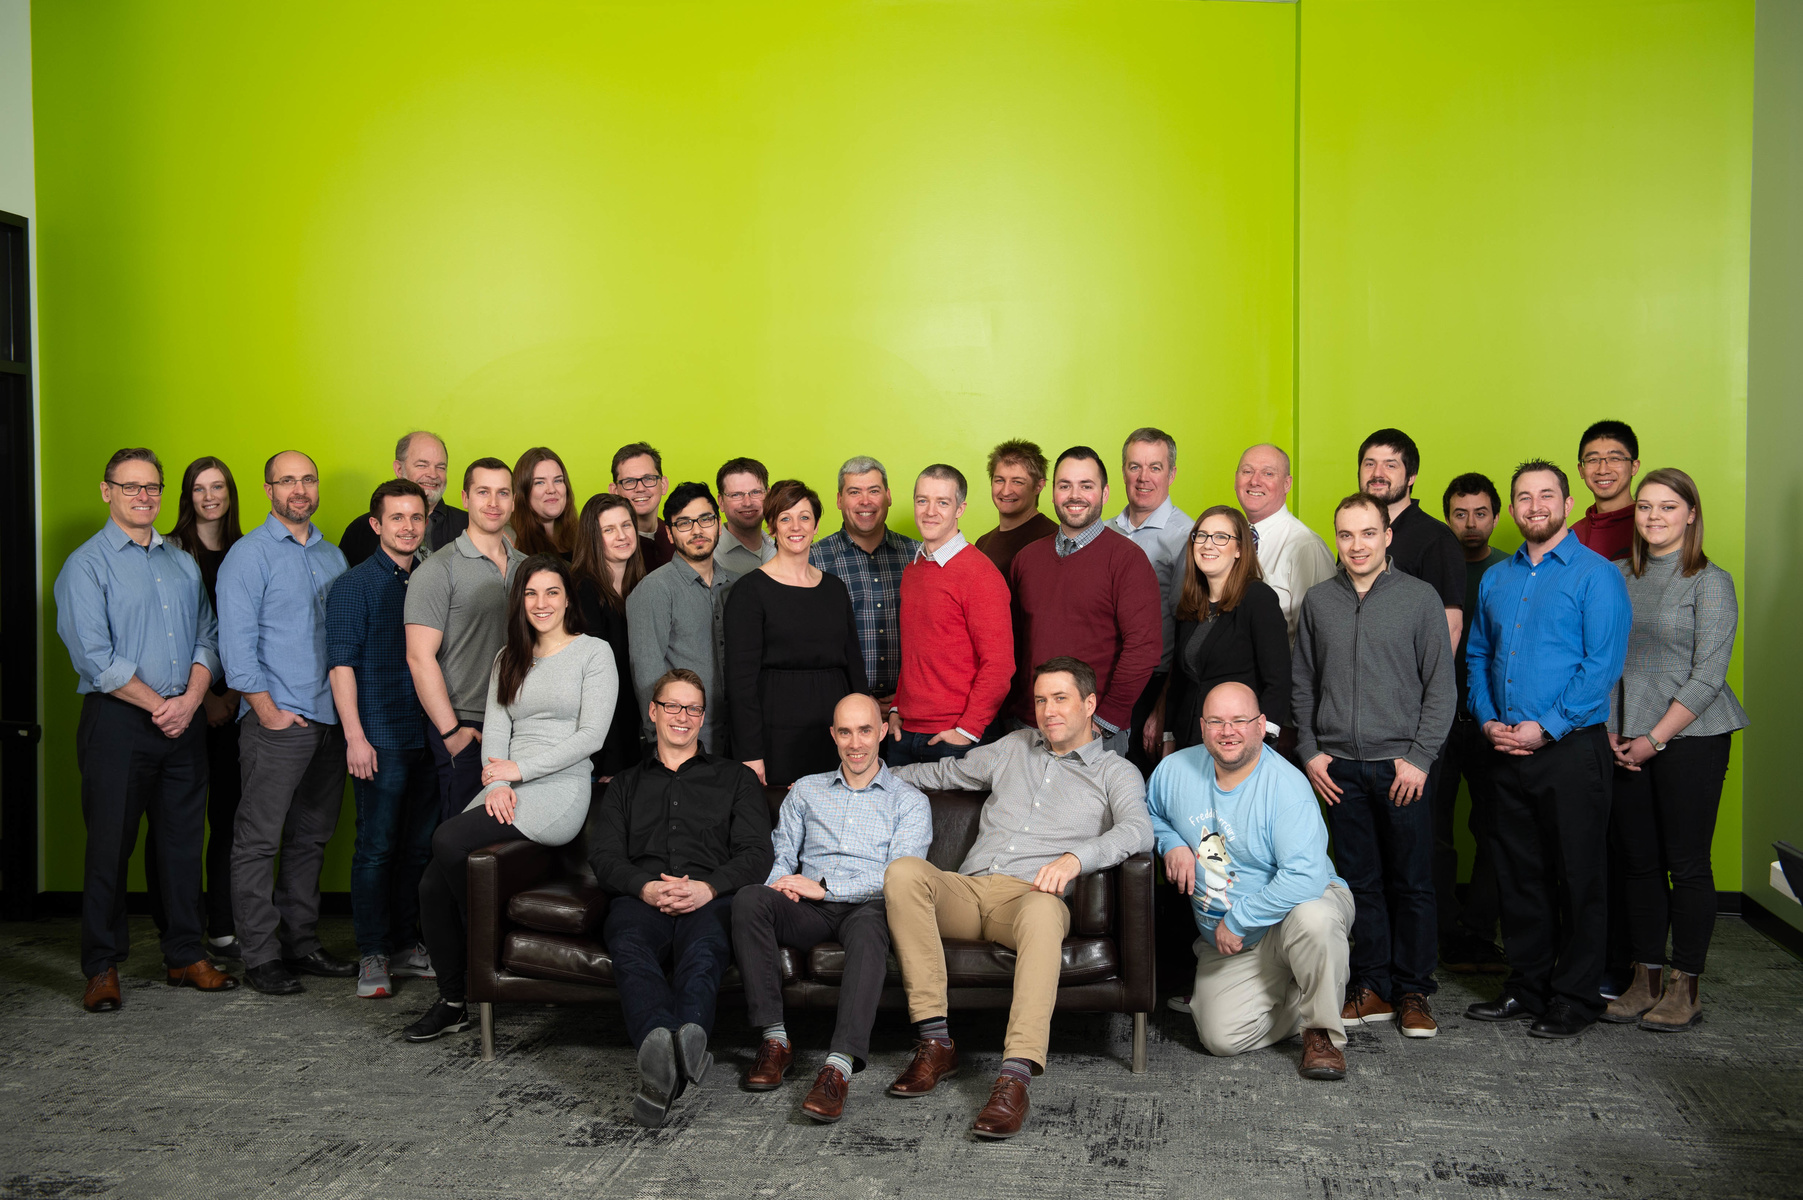 Crank Software's employee group photo